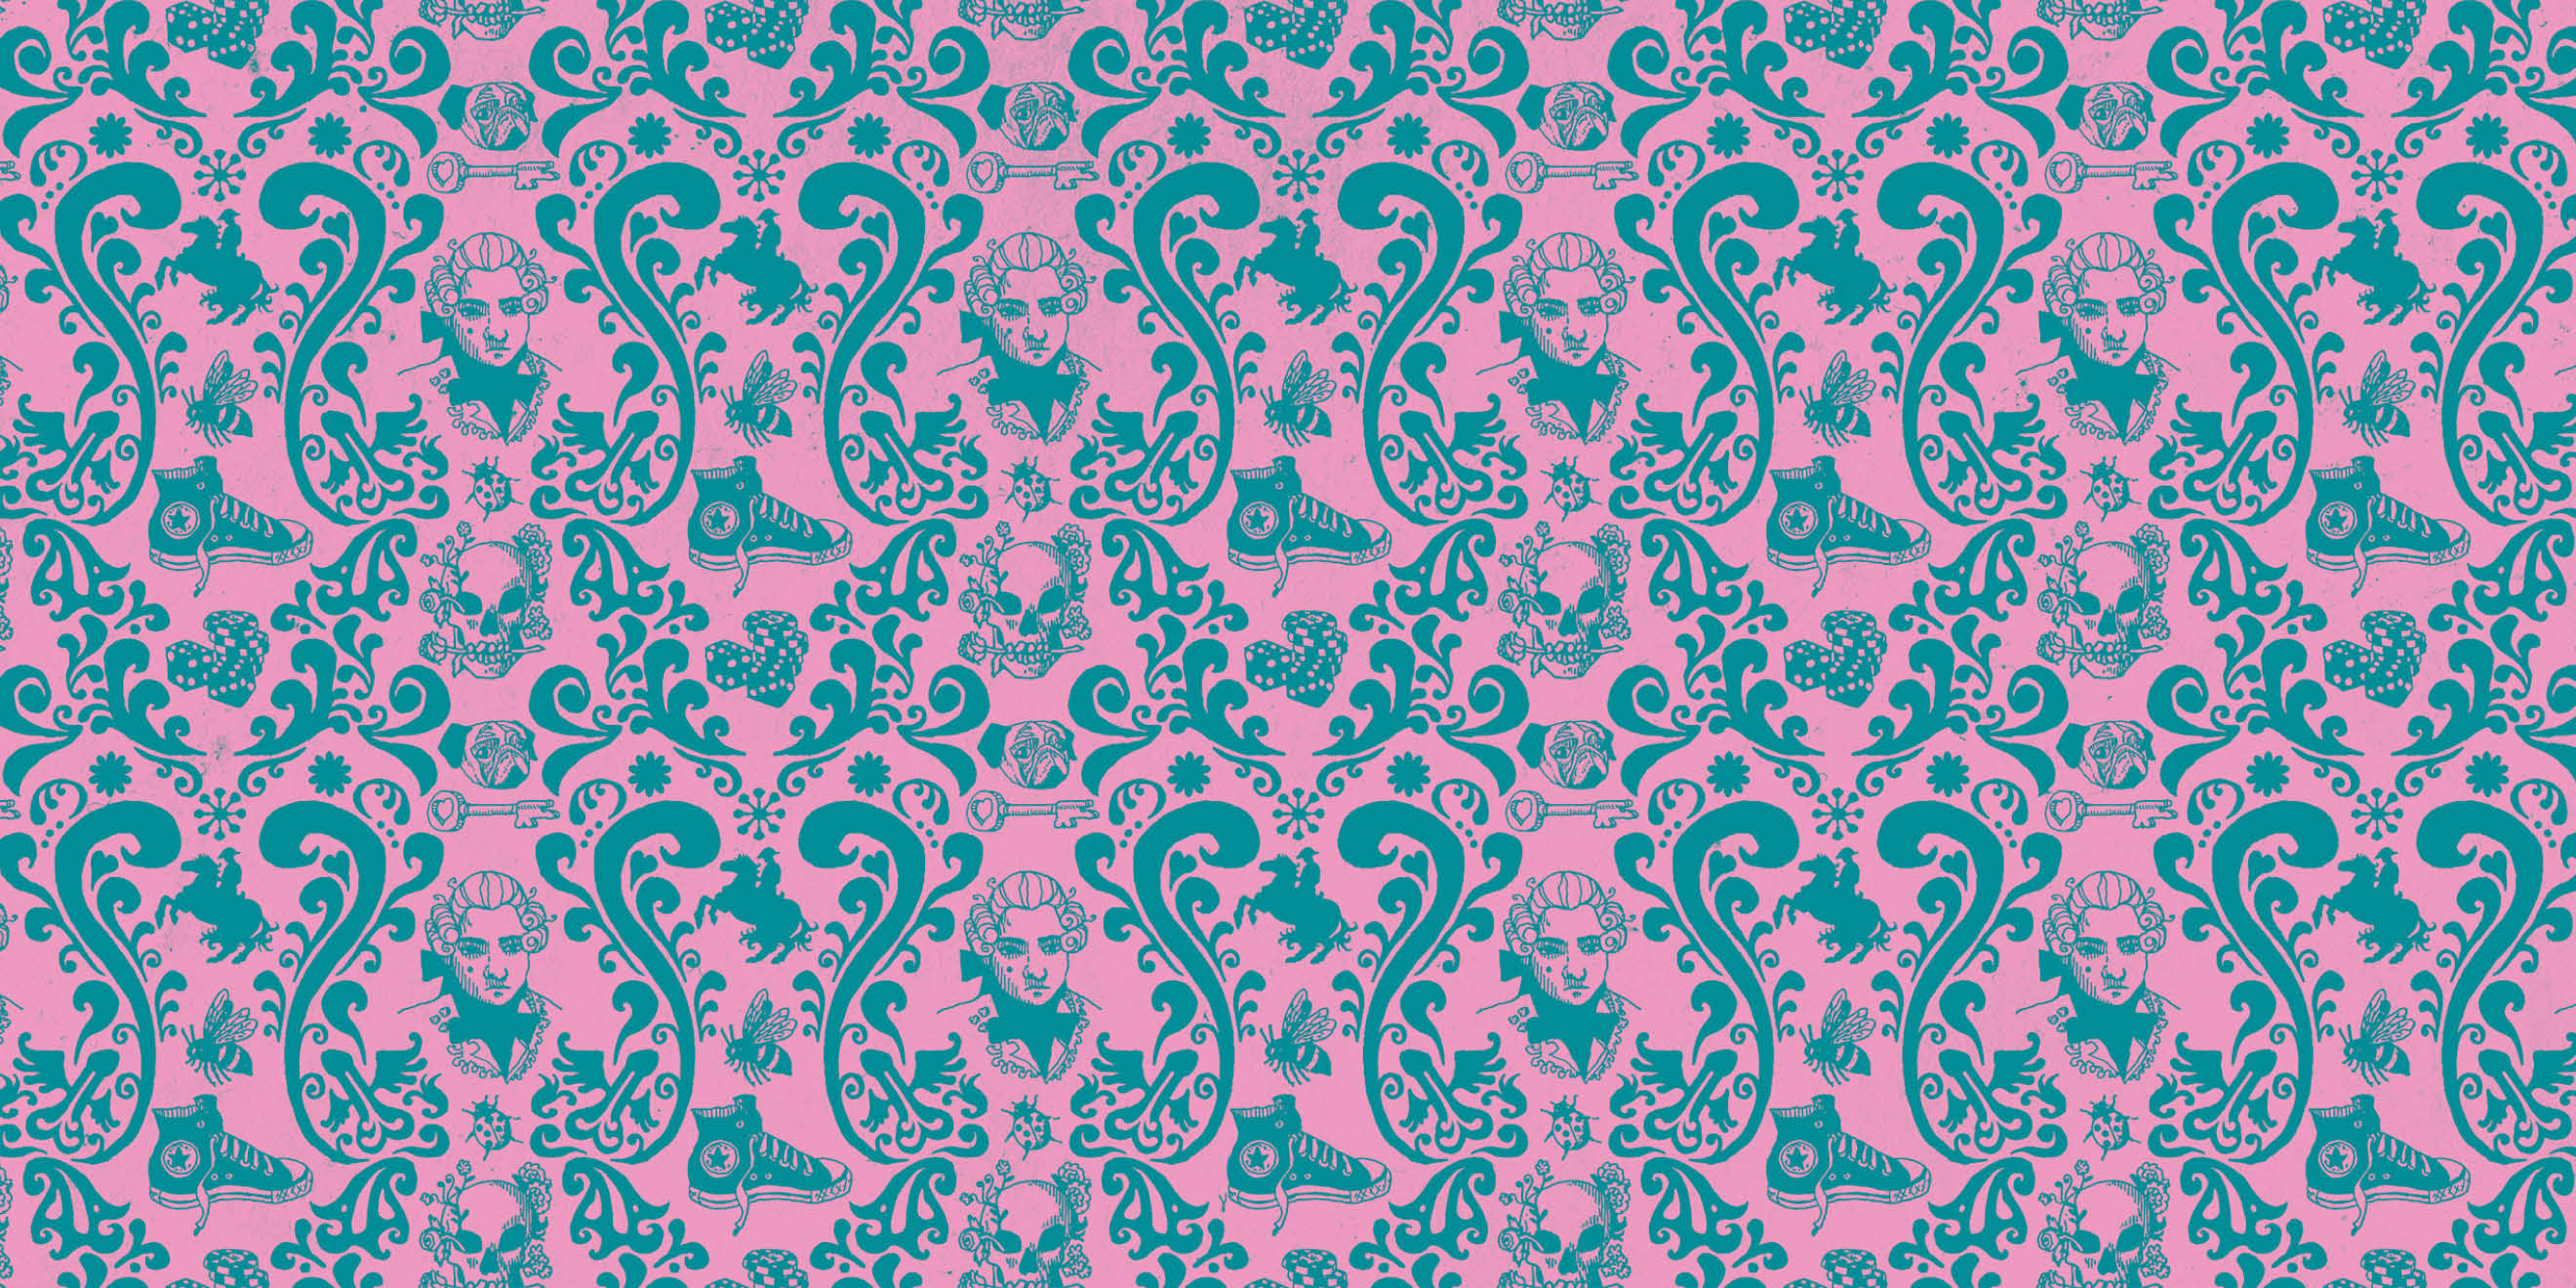 Little White Lies wallpaper pattern by Human After All Creative Director Paul Willoughby - image 6